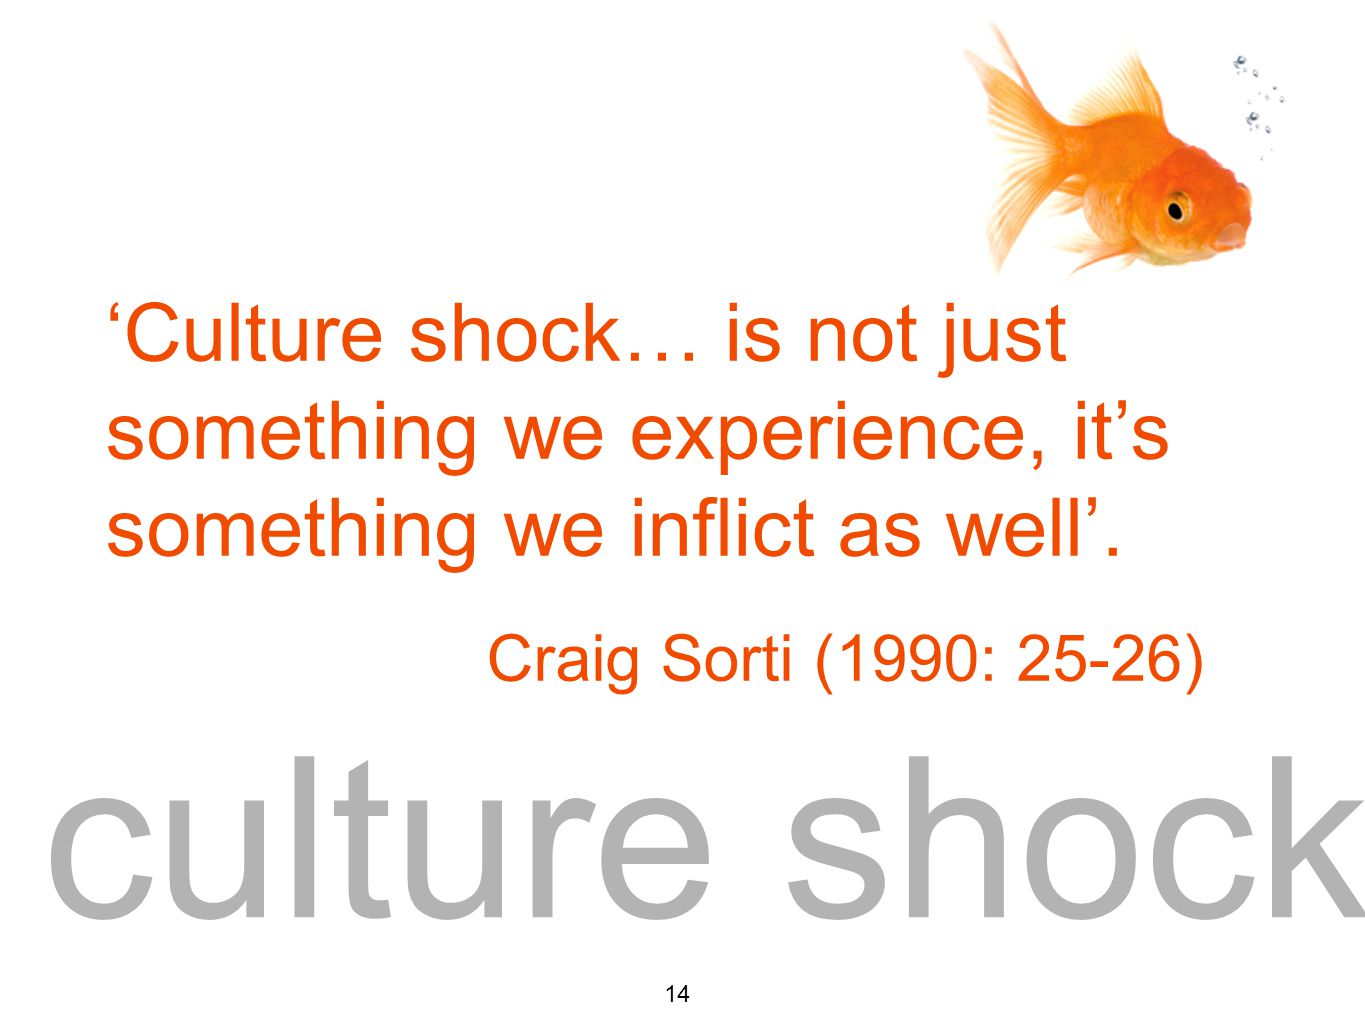 culture shock 14 'Culture shock… is not just something we experience, it's something we inflict as well'.